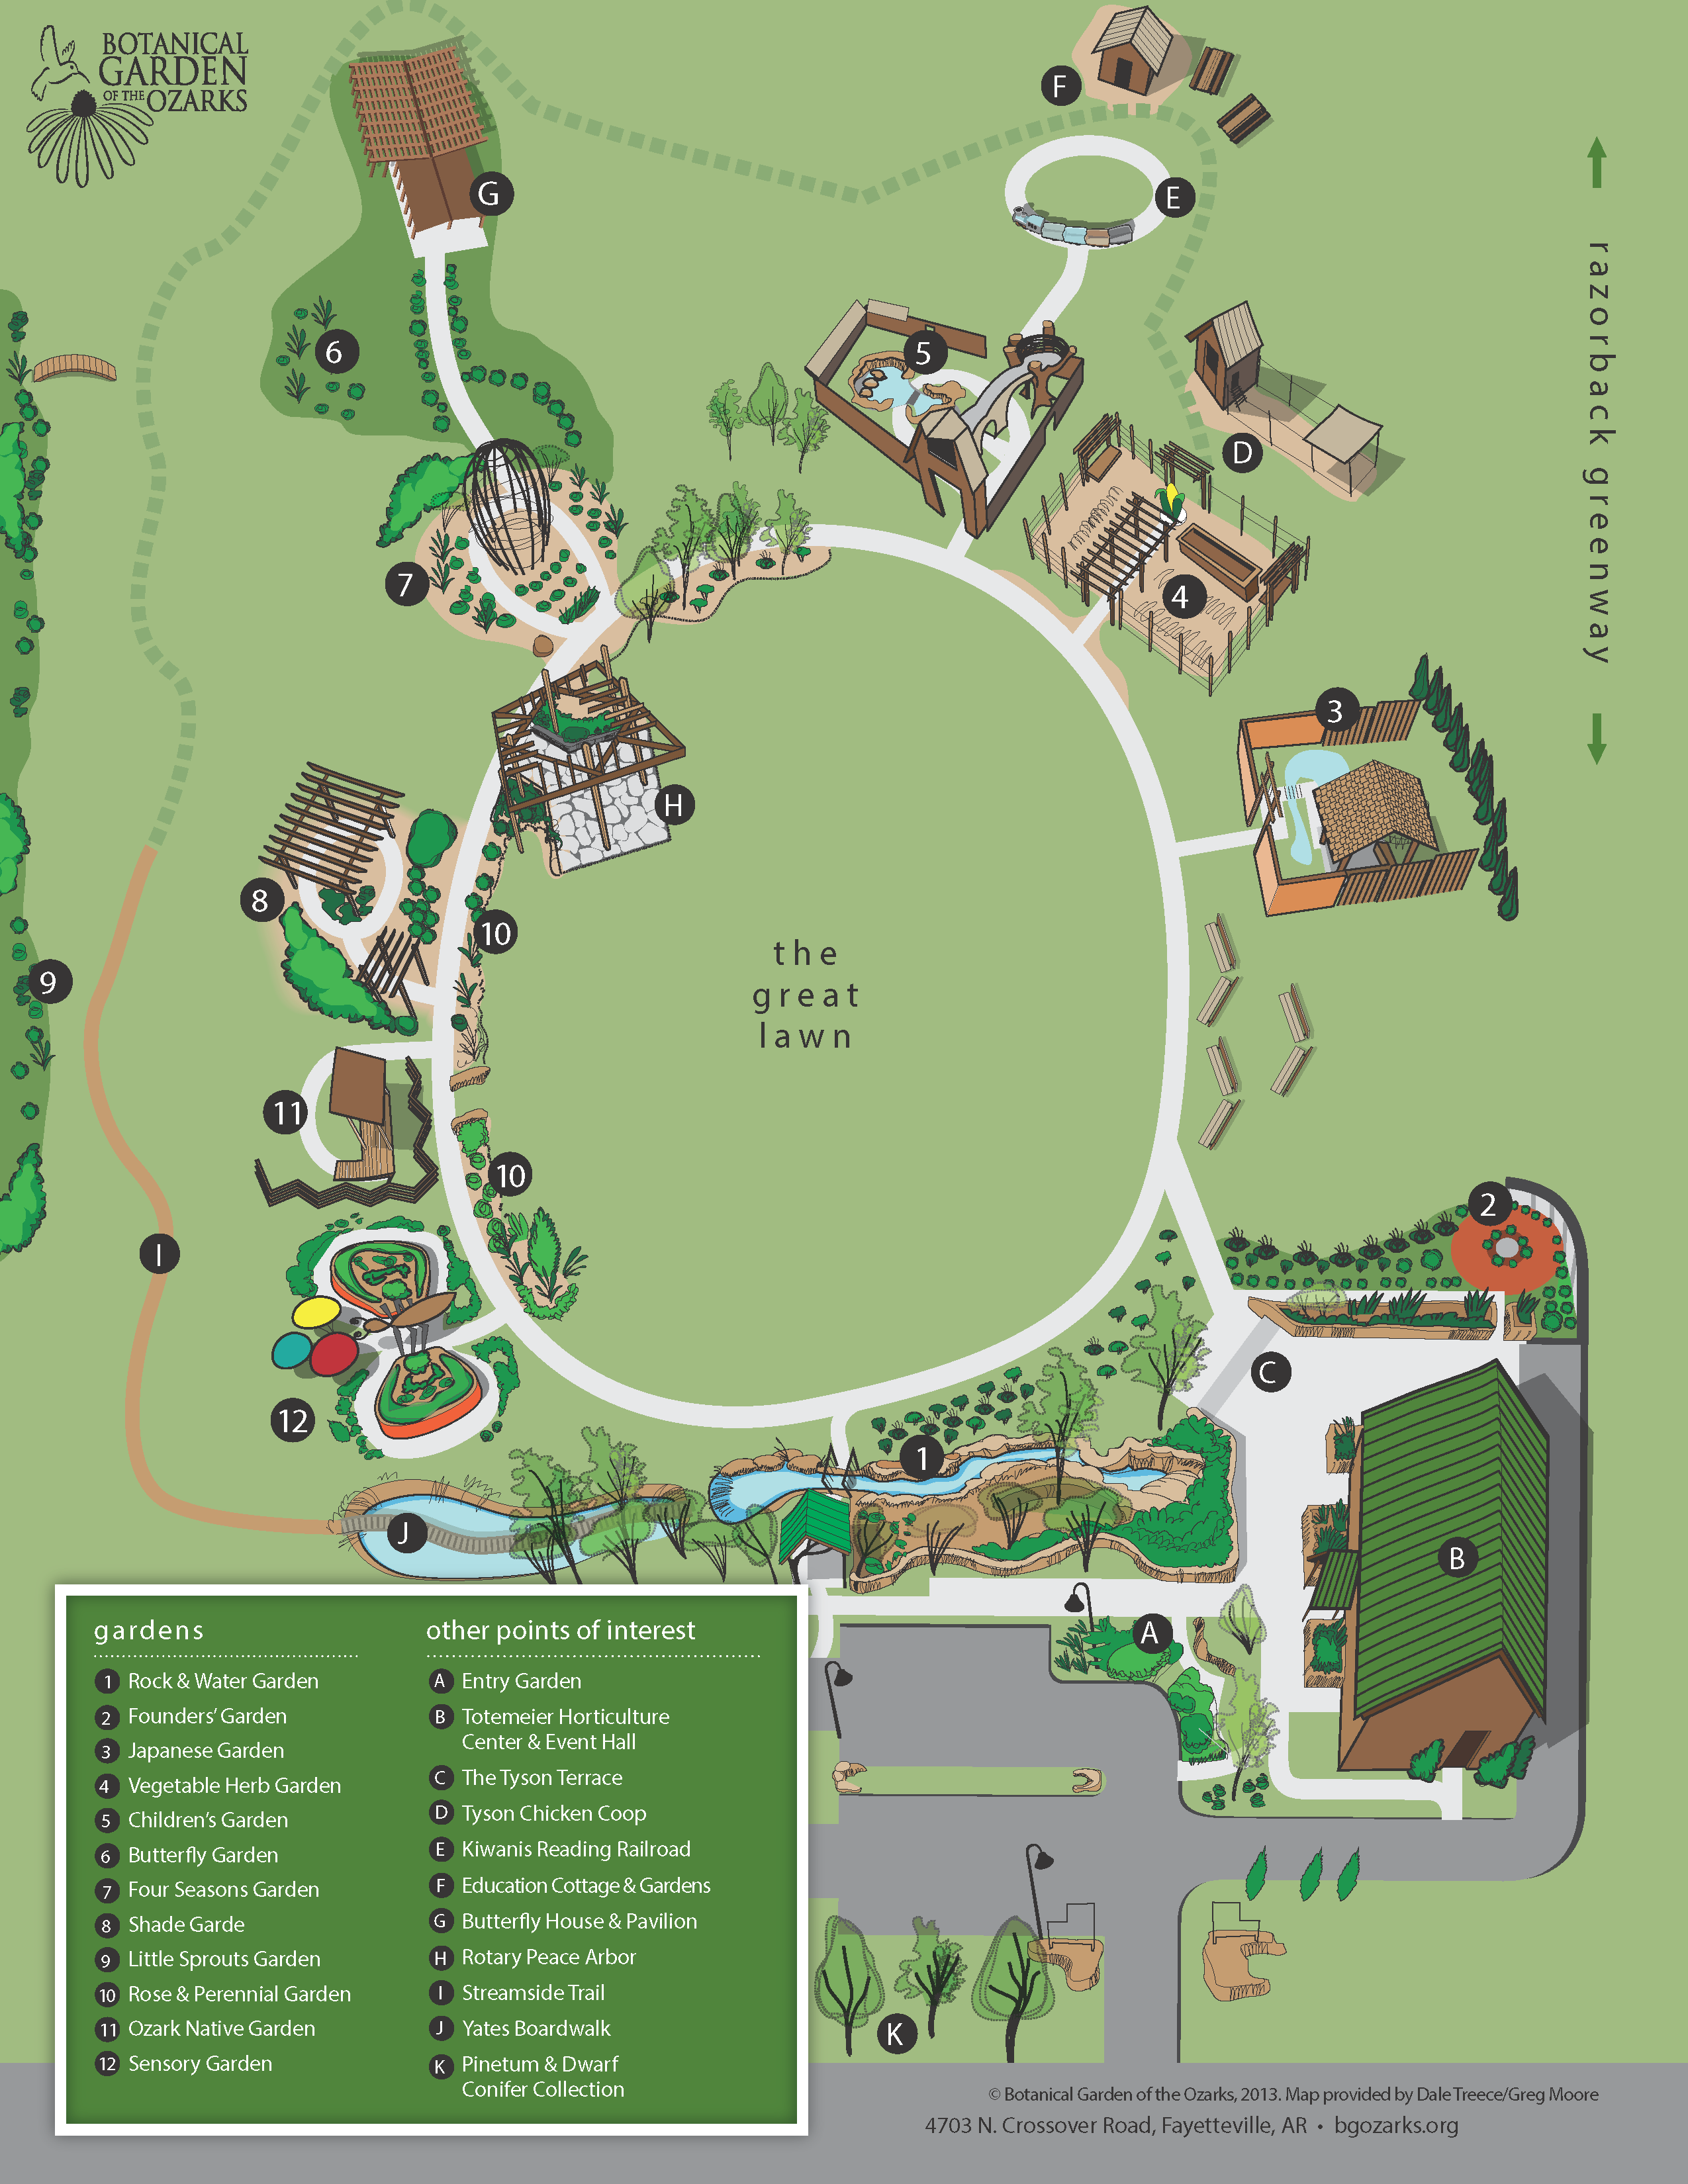 plan your visit botanical garden of the ozarks